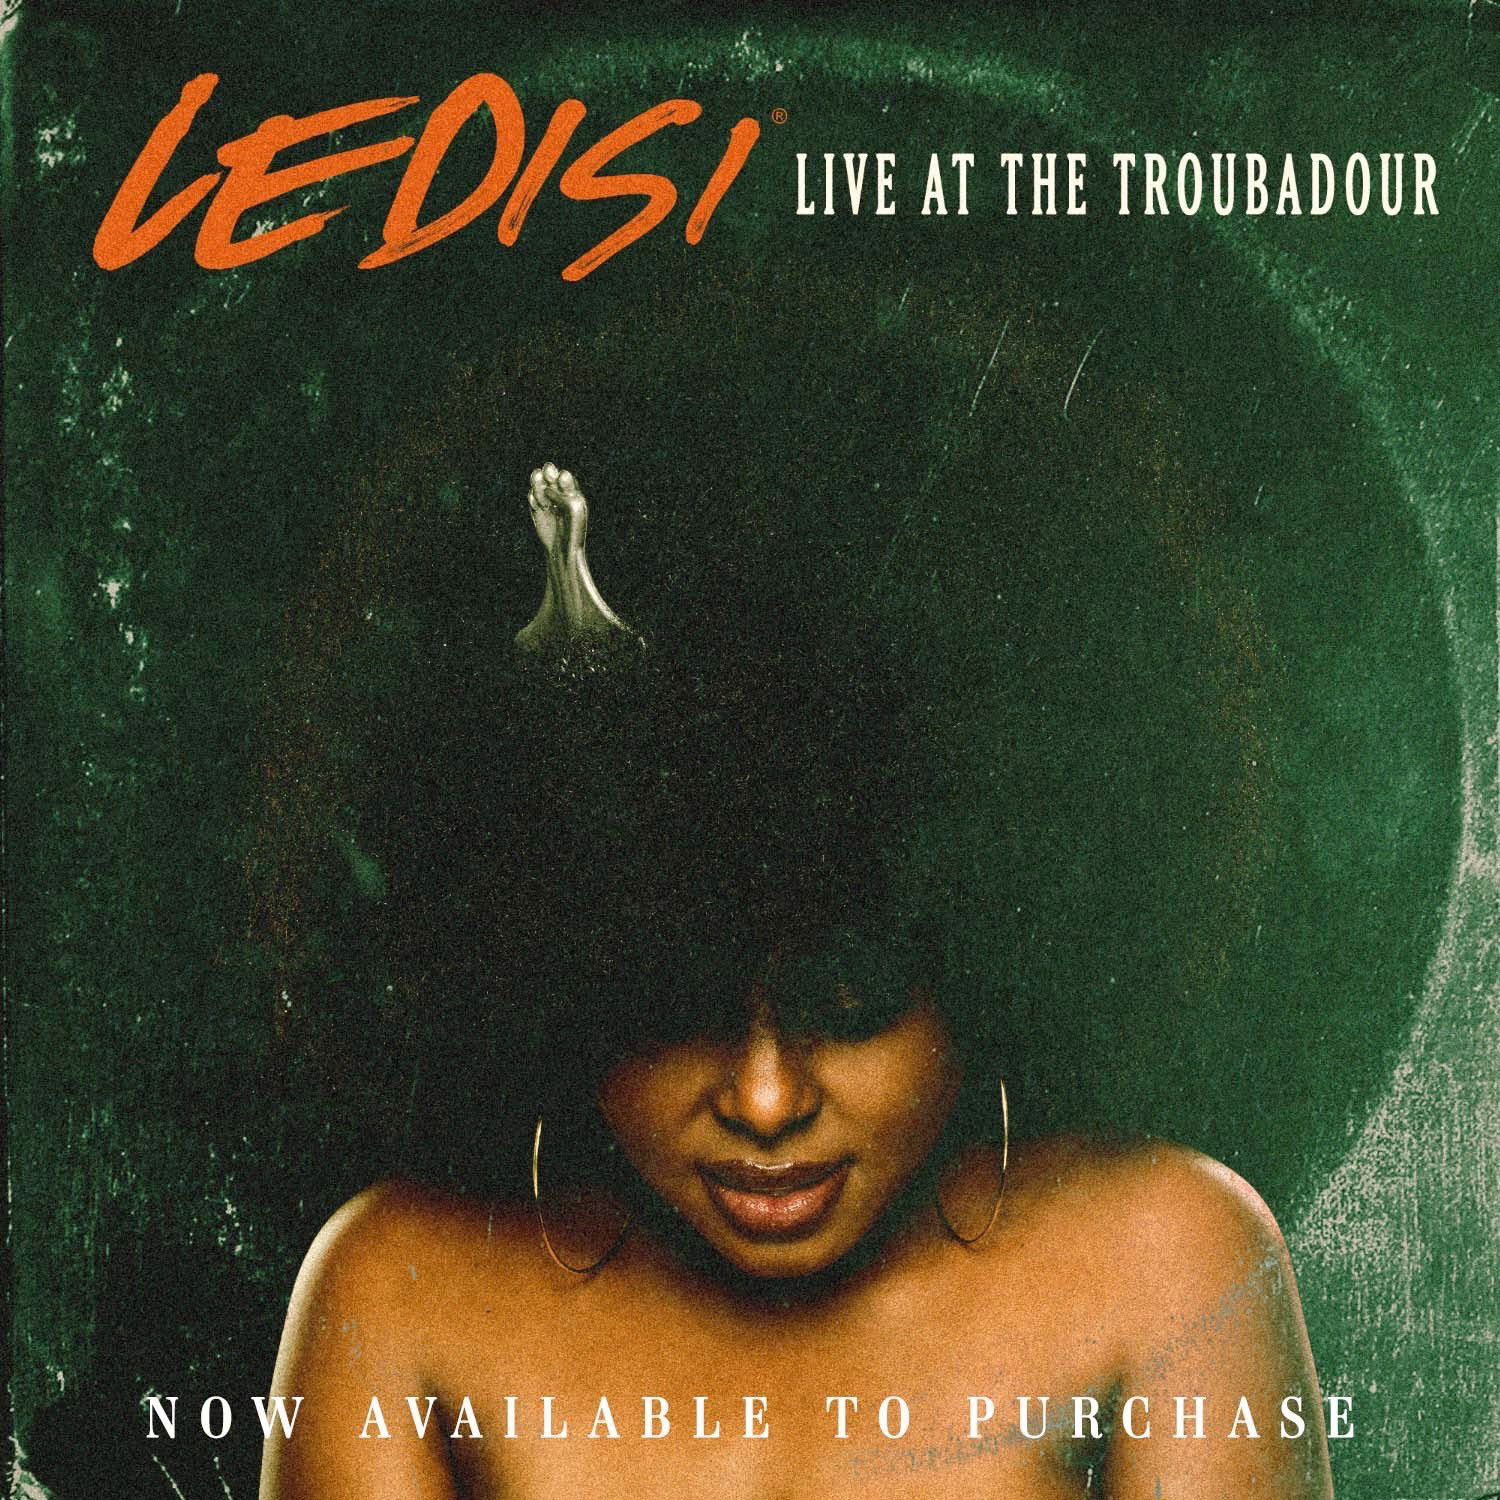 Ledisi Live at the Troubadour